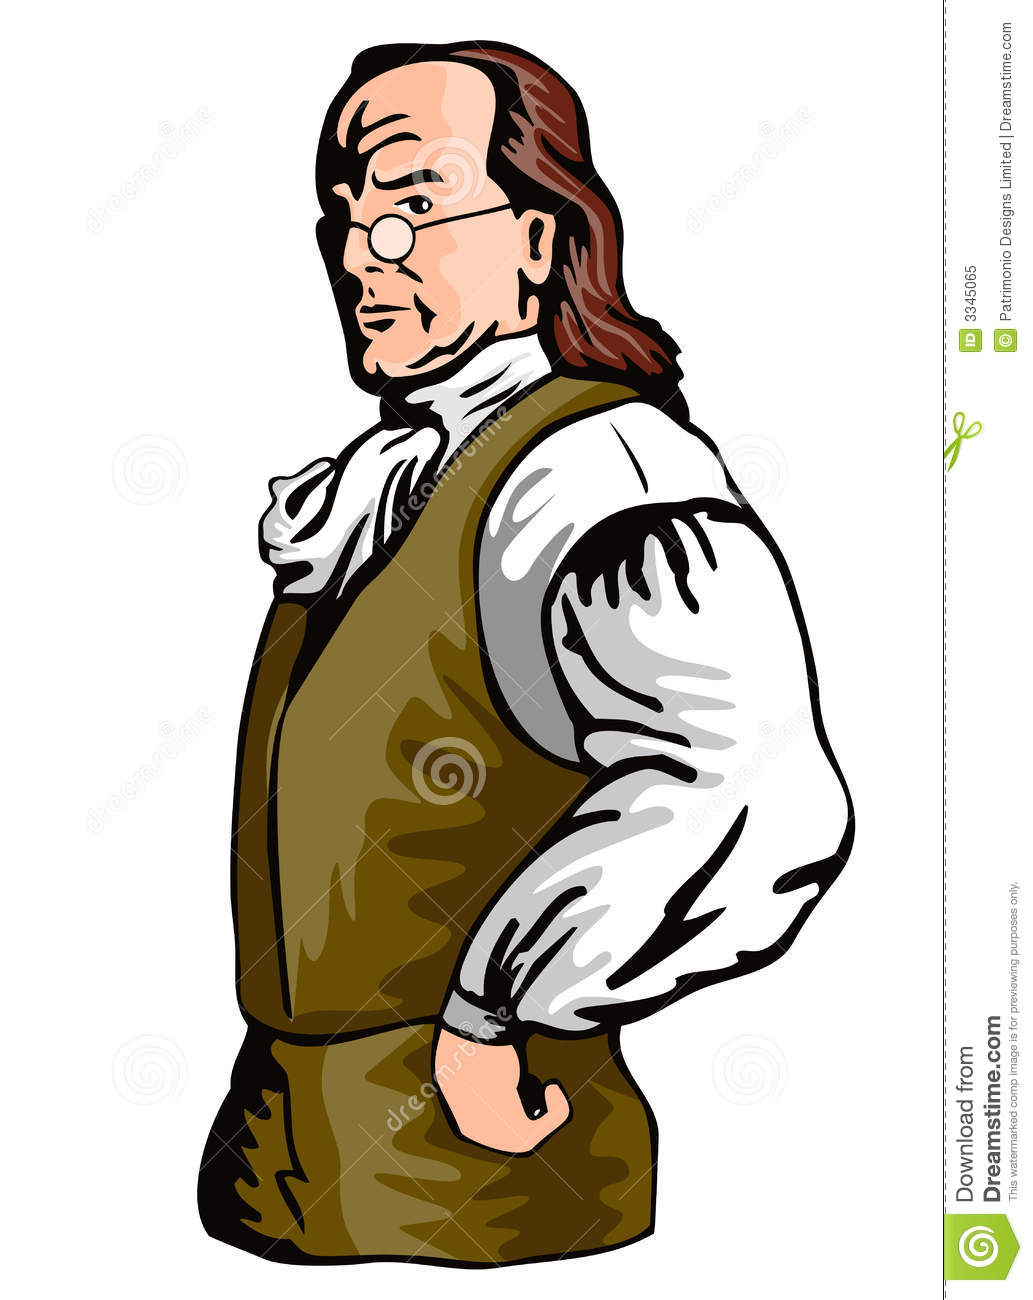 benjamin franklin royalty free stock photo image 3345065 benjamin franklin clipart download benjamin franklin inventions clipart